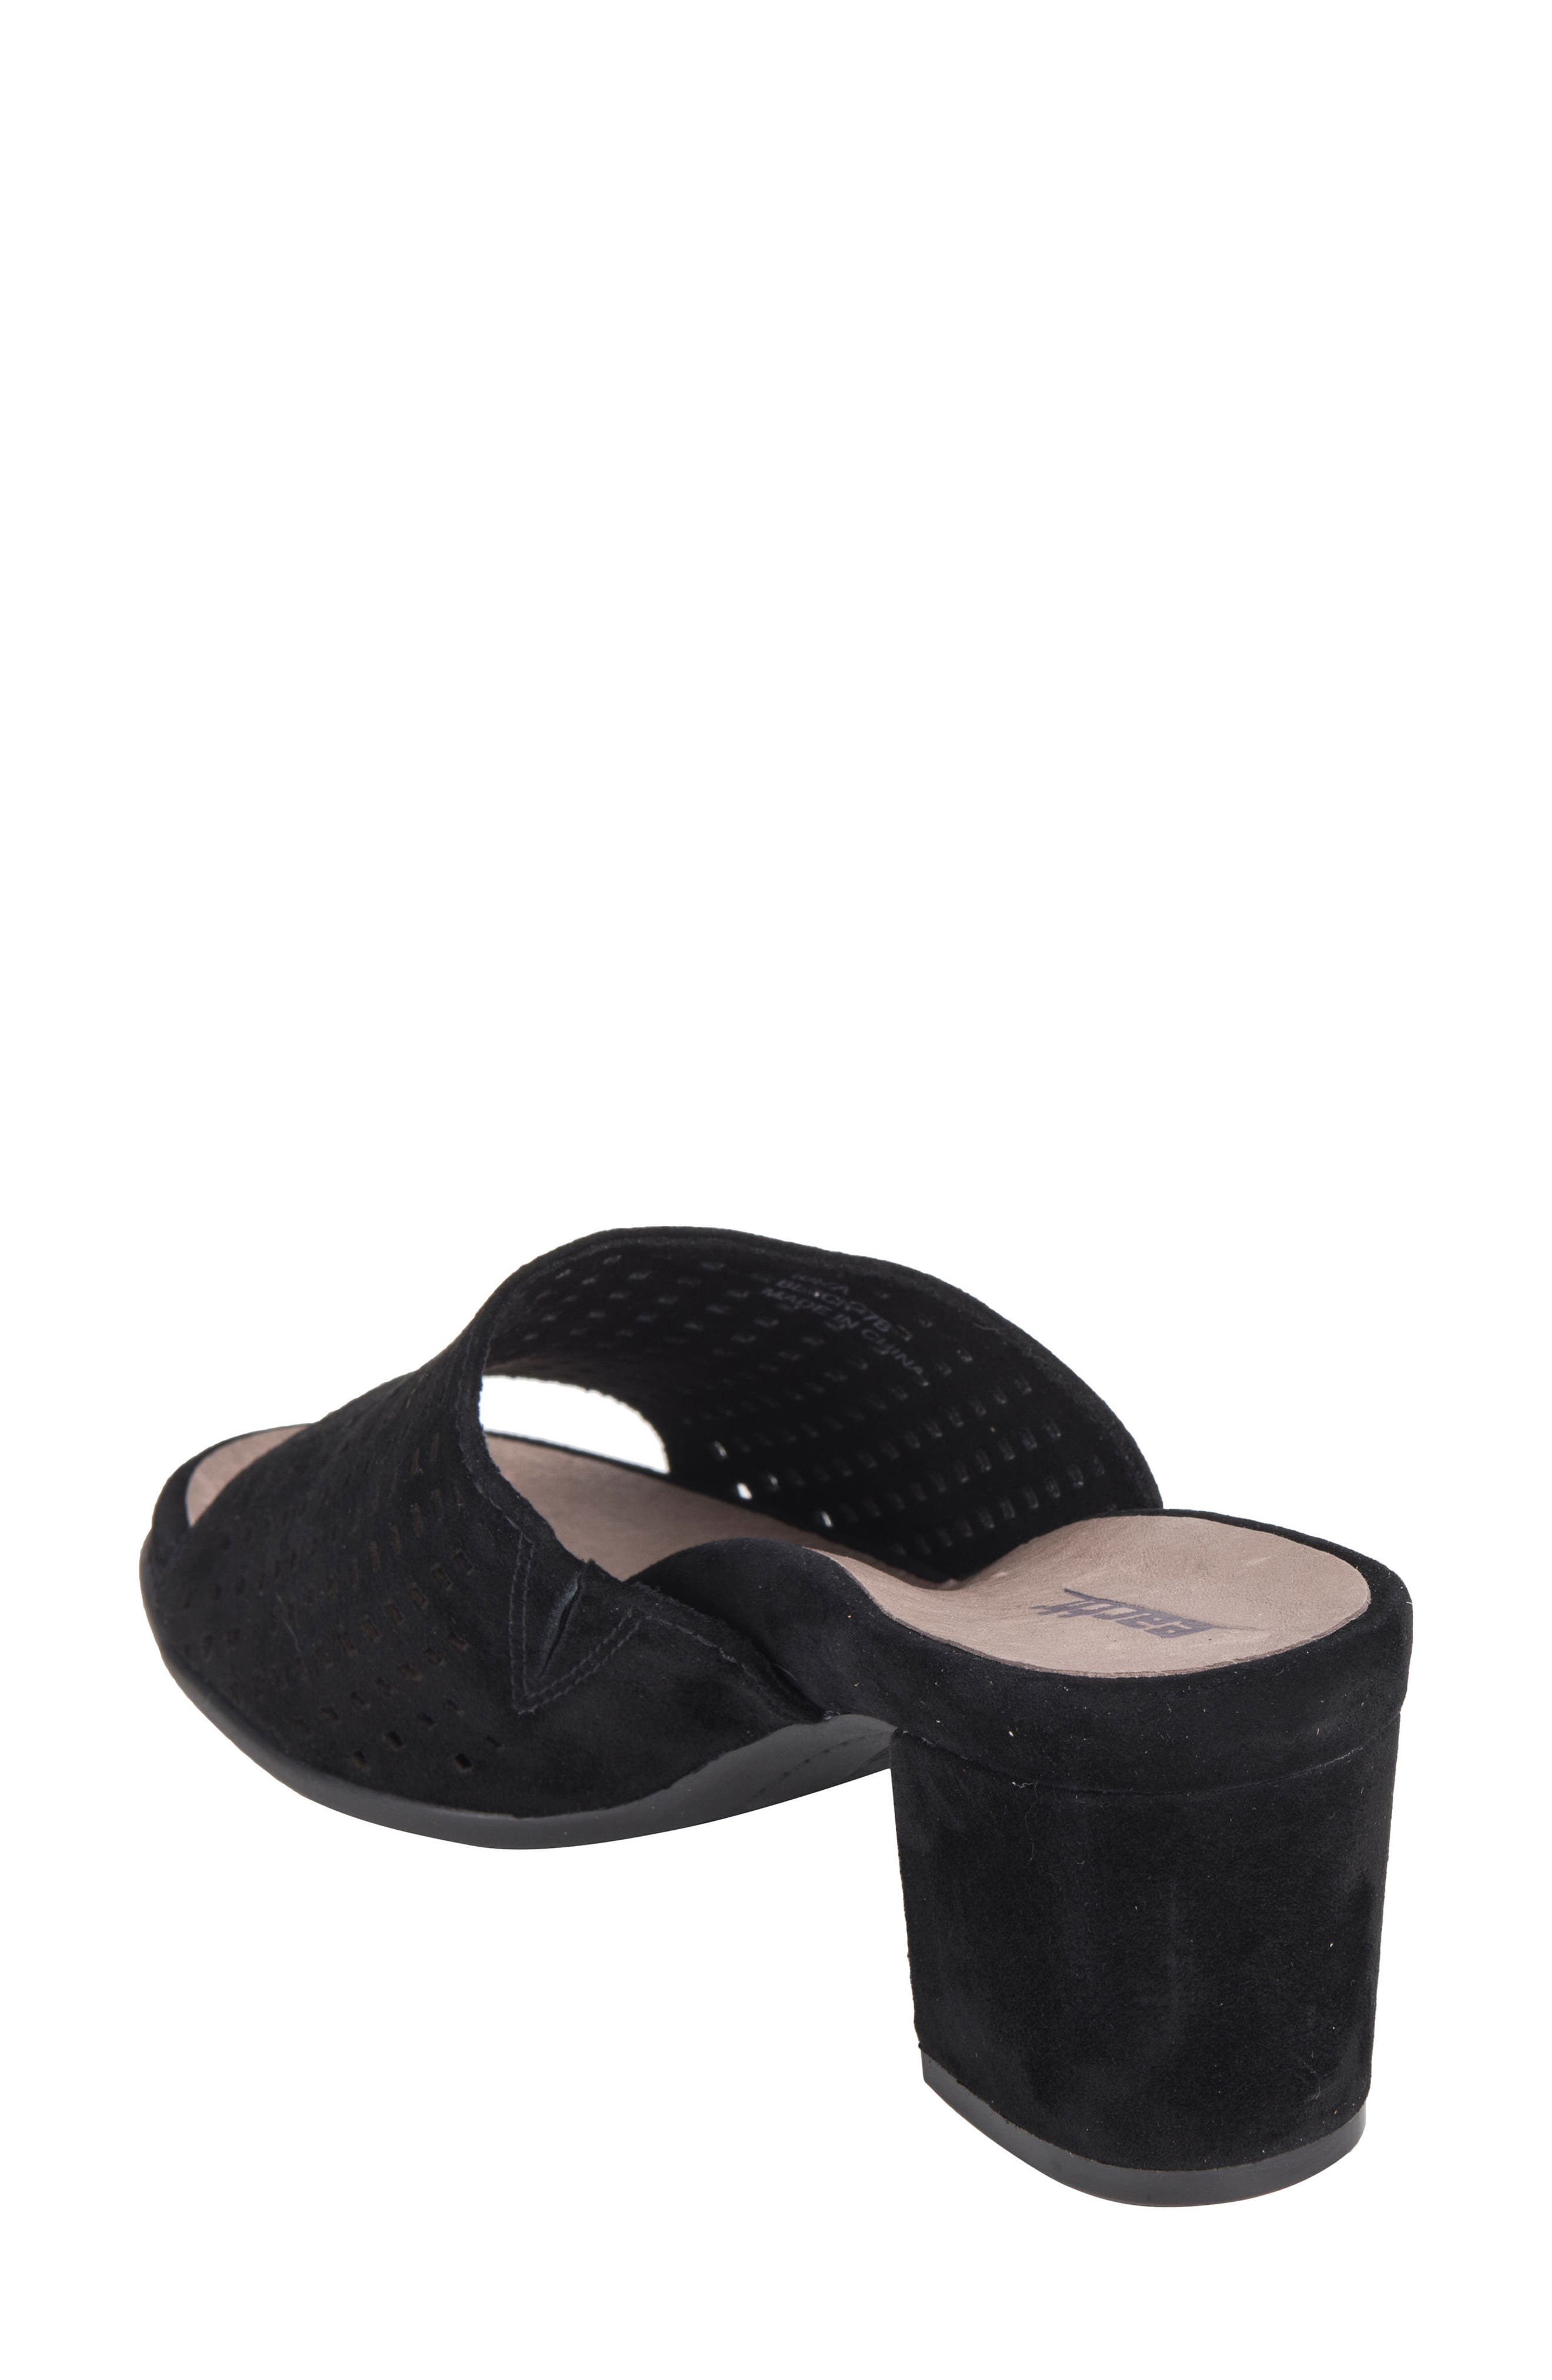 Ibiza Perforated Sandal,                             Alternate thumbnail 2, color,                             BLACK SUEDE